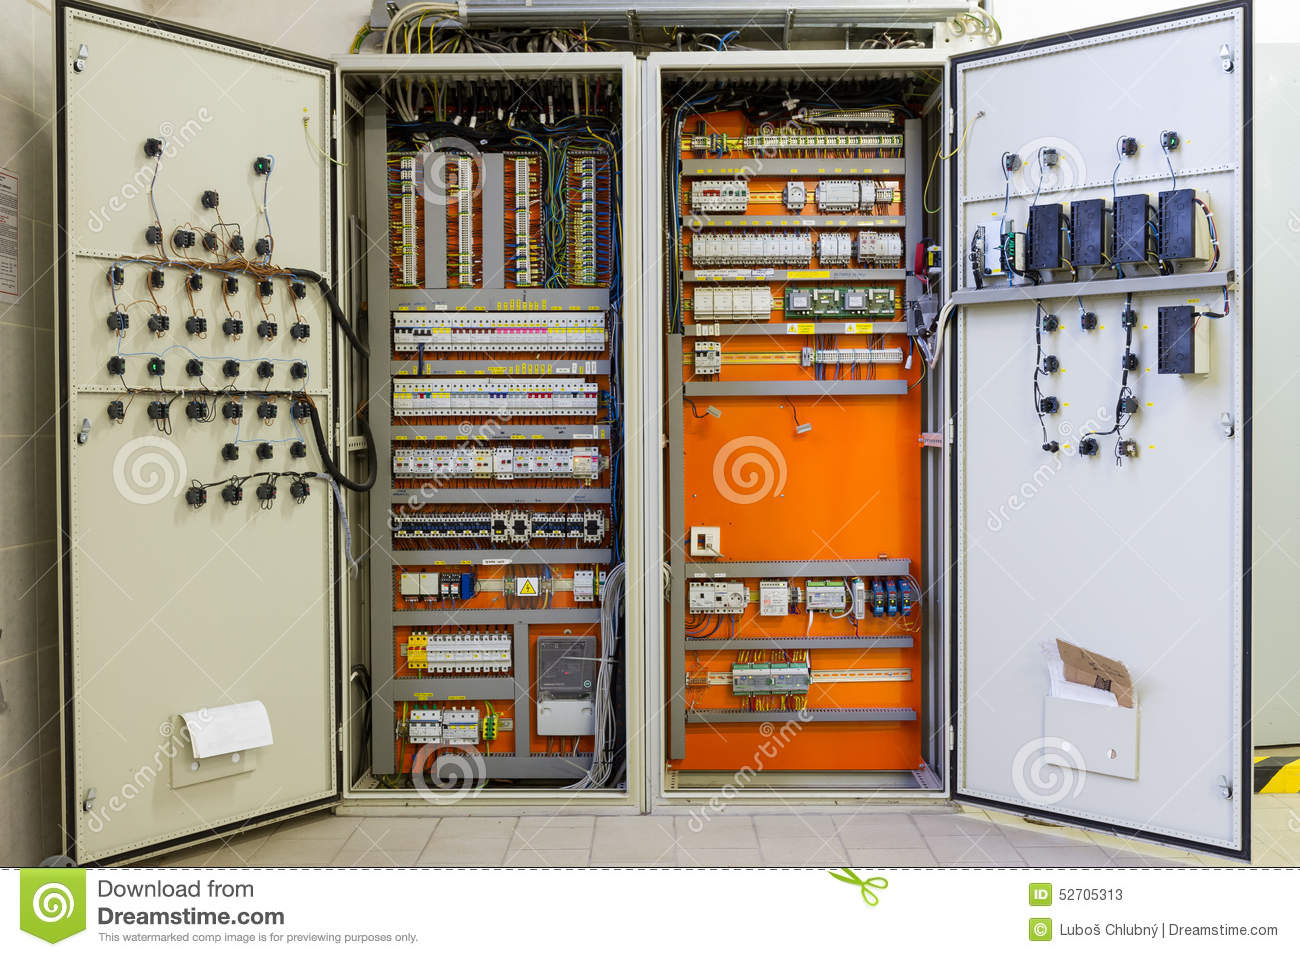 Electricity Distribution Box With Wires Circuit Breakers And Fu Breaker Wiring Download Stock Image Of